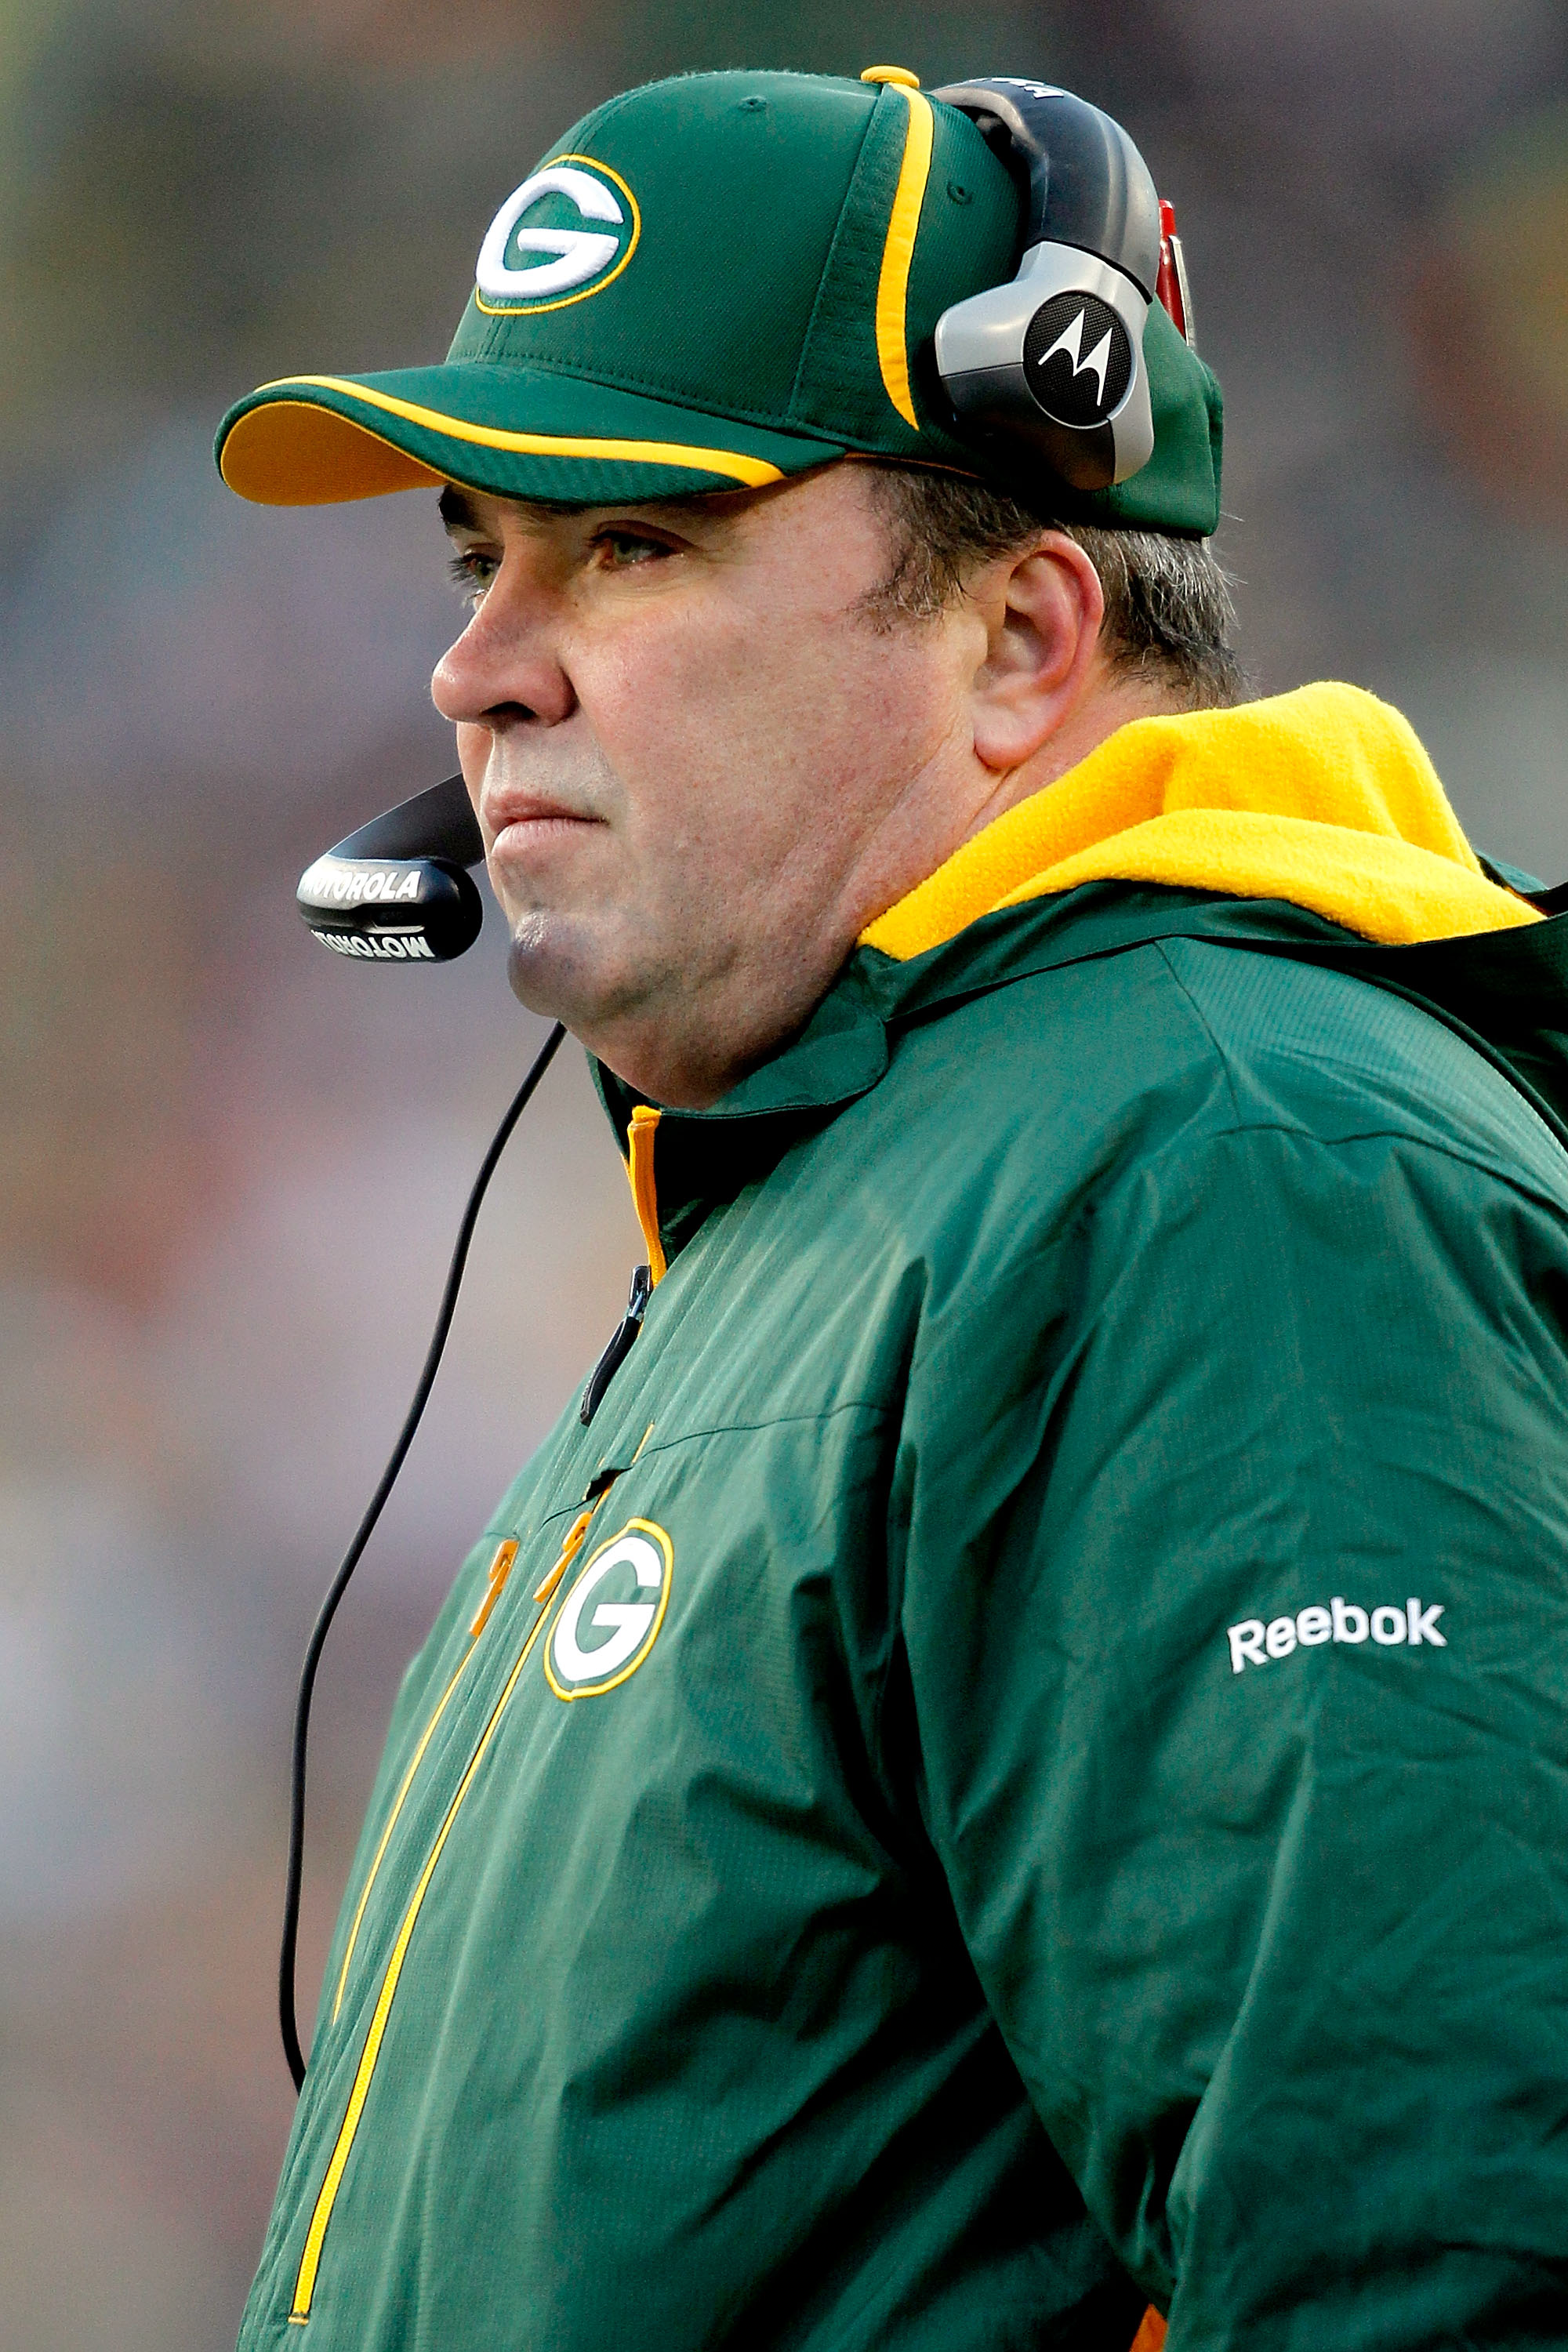 GREEN BAY, WI - JANUARY 02:  Head coach Mike McCarthy of the Green Bay Packers on the sidelines against the Chicago Bears at Lambeau Field on January 2, 2011 in Green Bay, Wisconsin.  (Photo by Matthew Stockman/Getty Images)